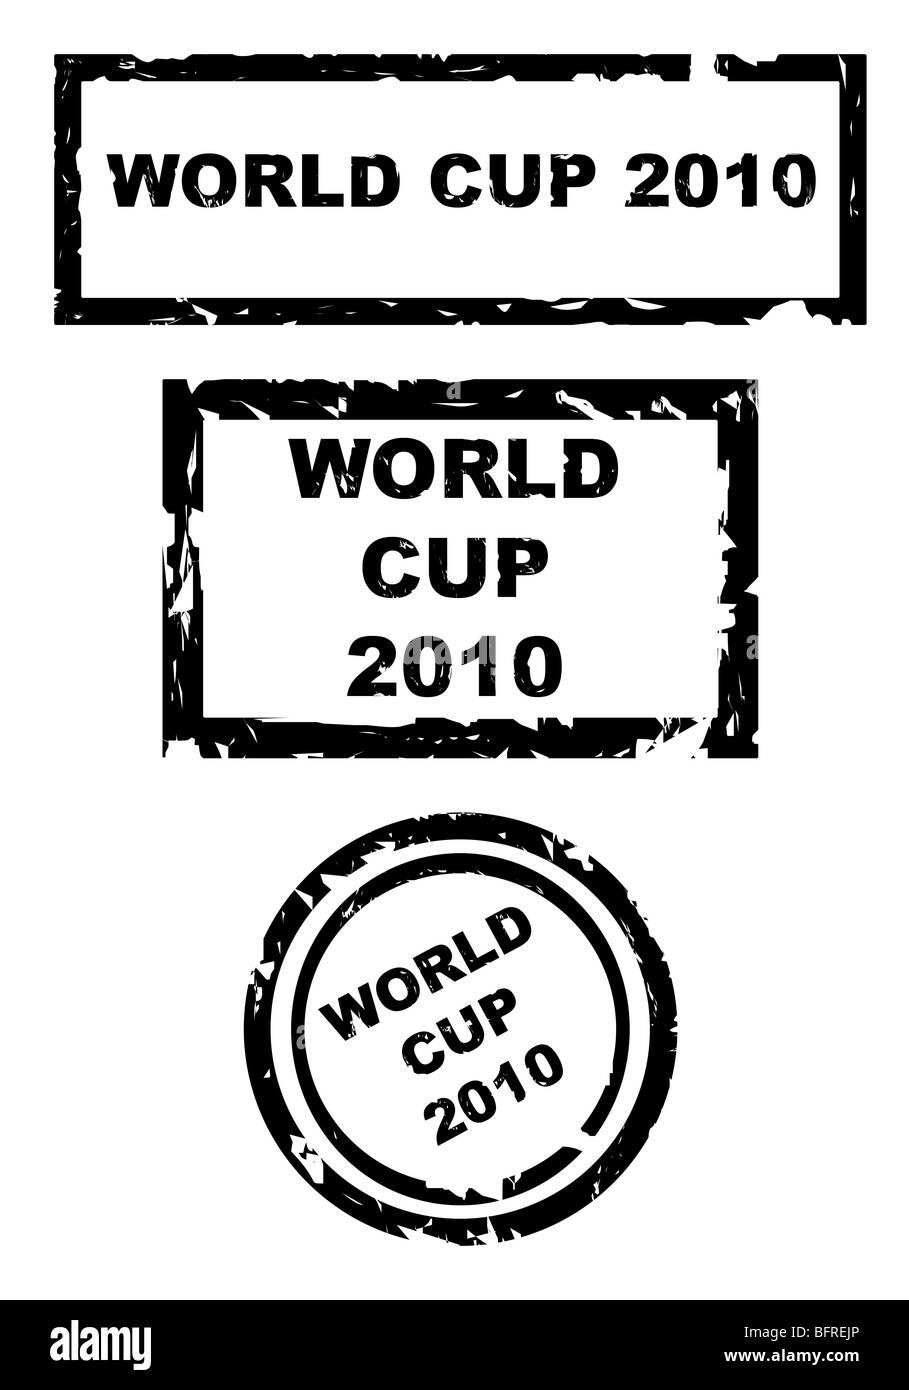 Used world cup football 2010 stamps isolated on white background. - Stock Image